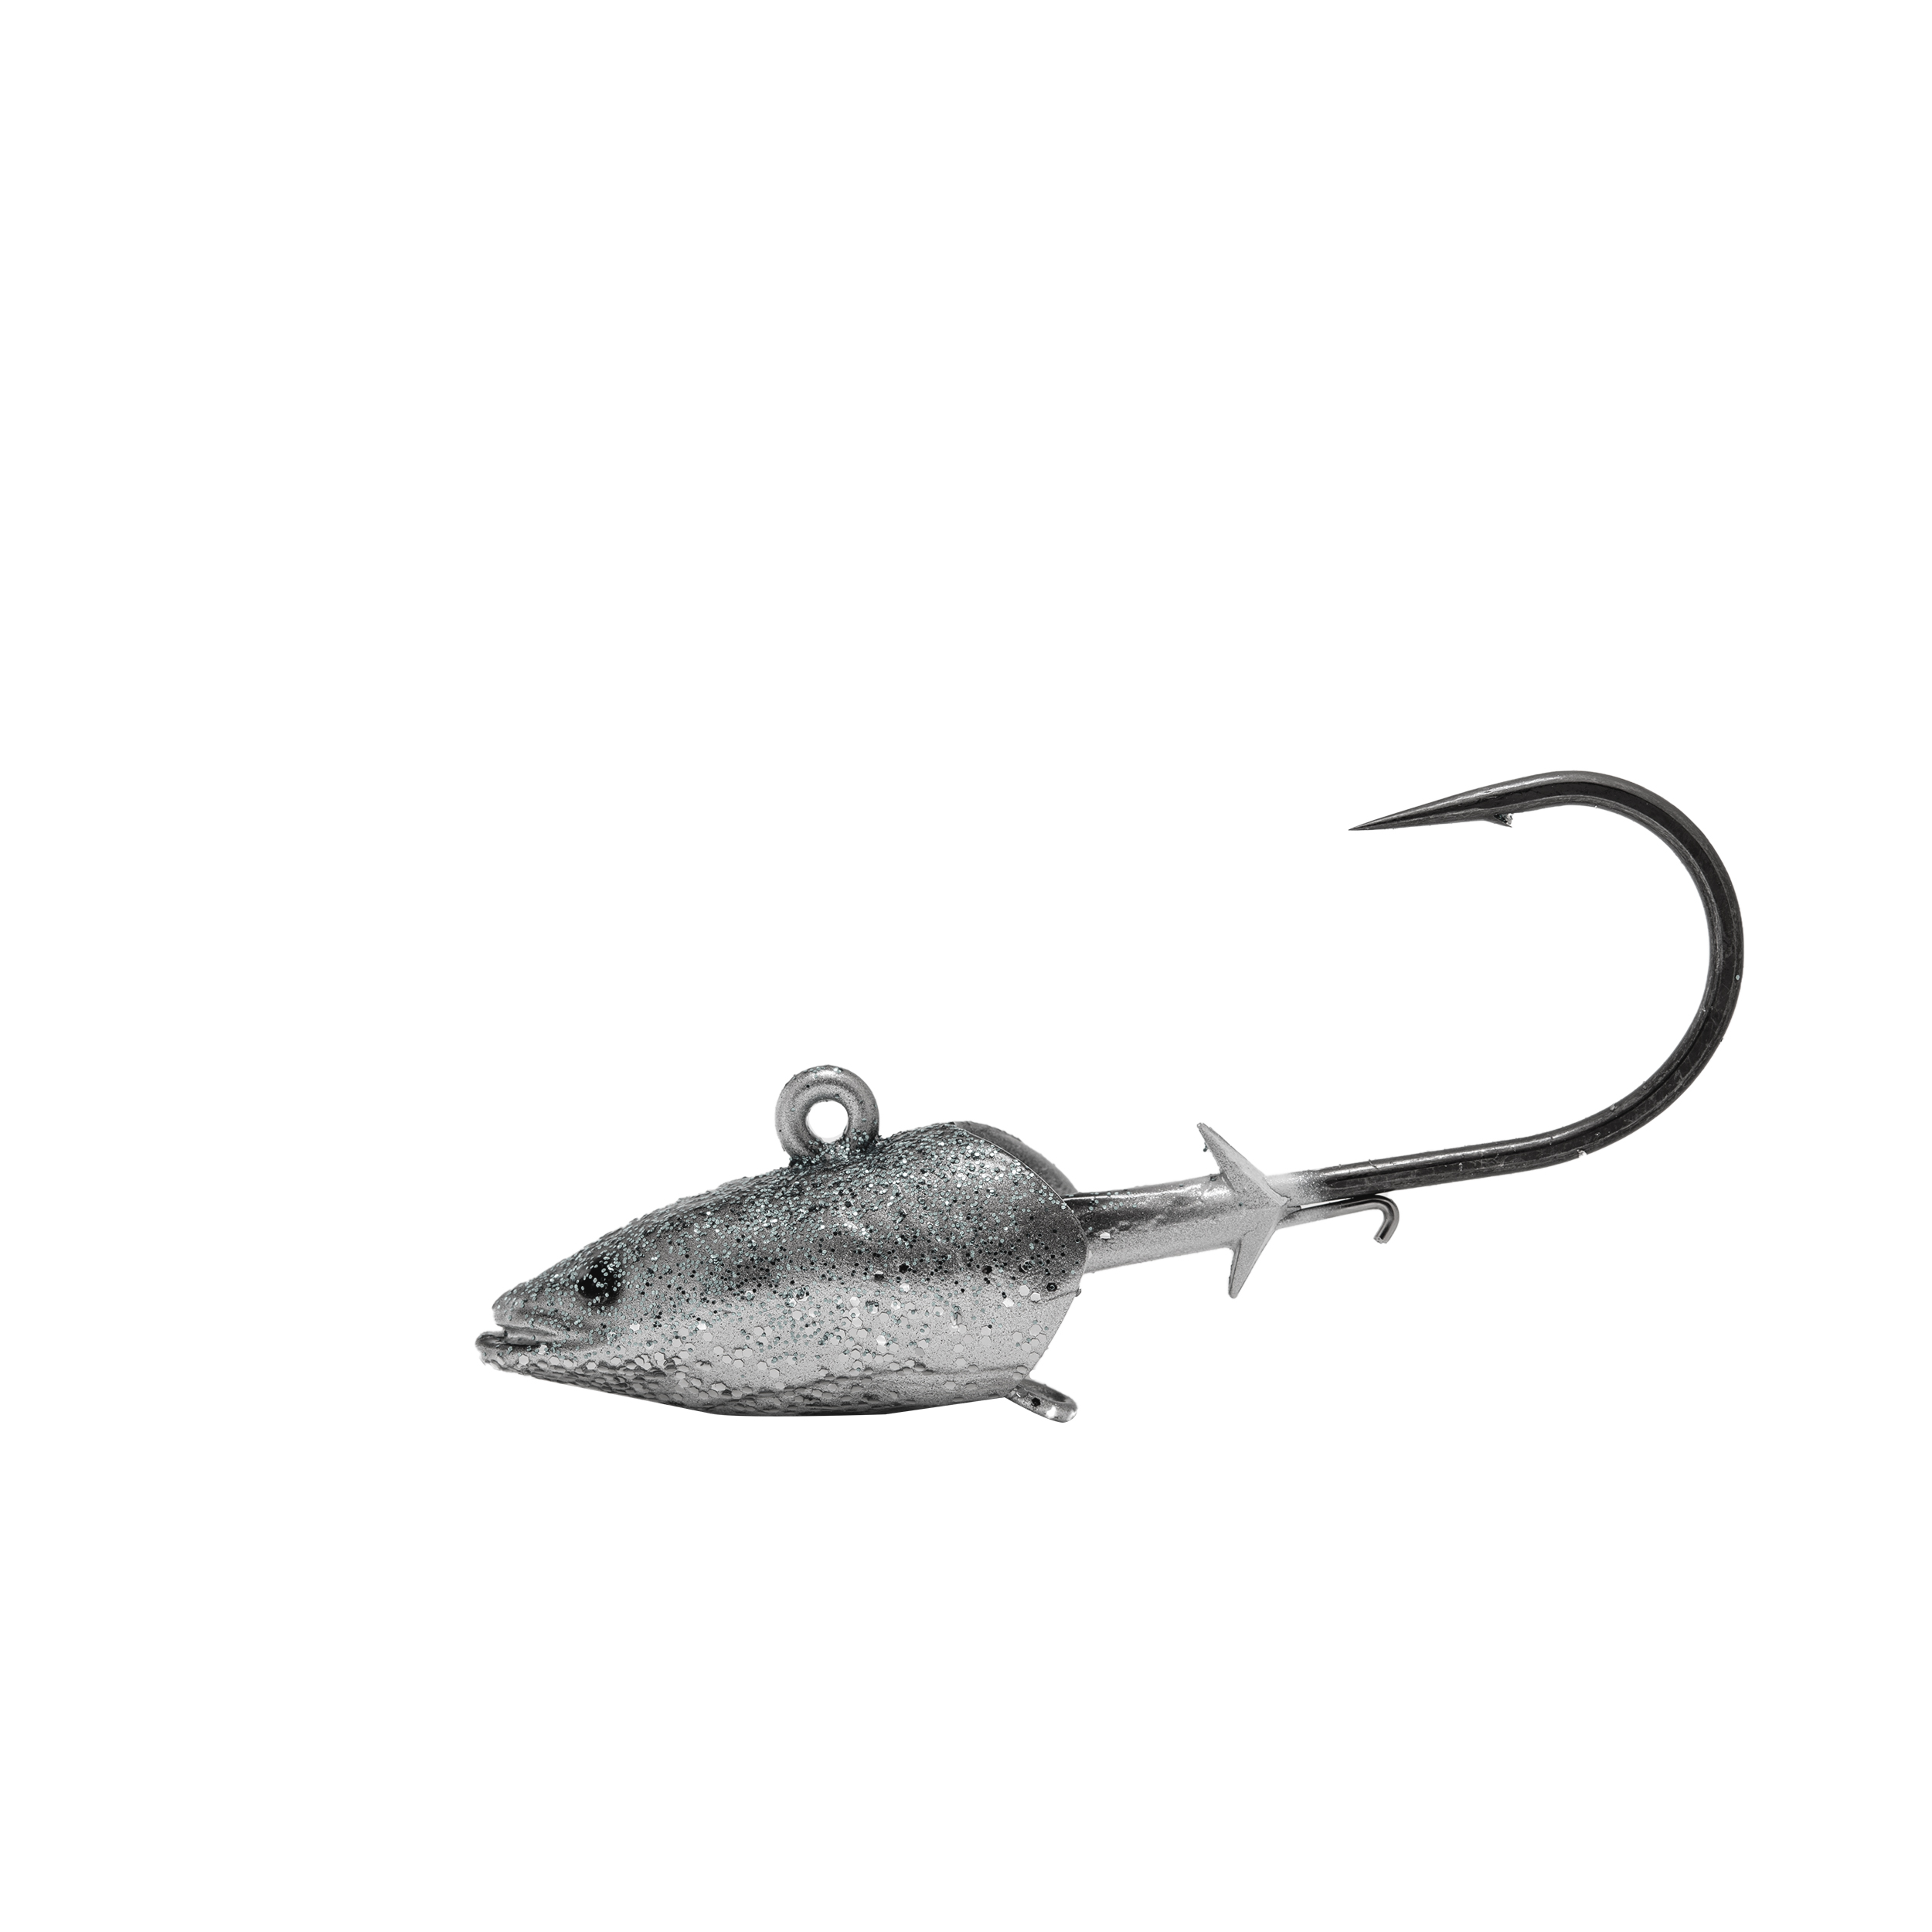 10g 19g 34g Fish Eel Lure Artificial Soft Bait Worm Barbed Hook Lead Jig Head